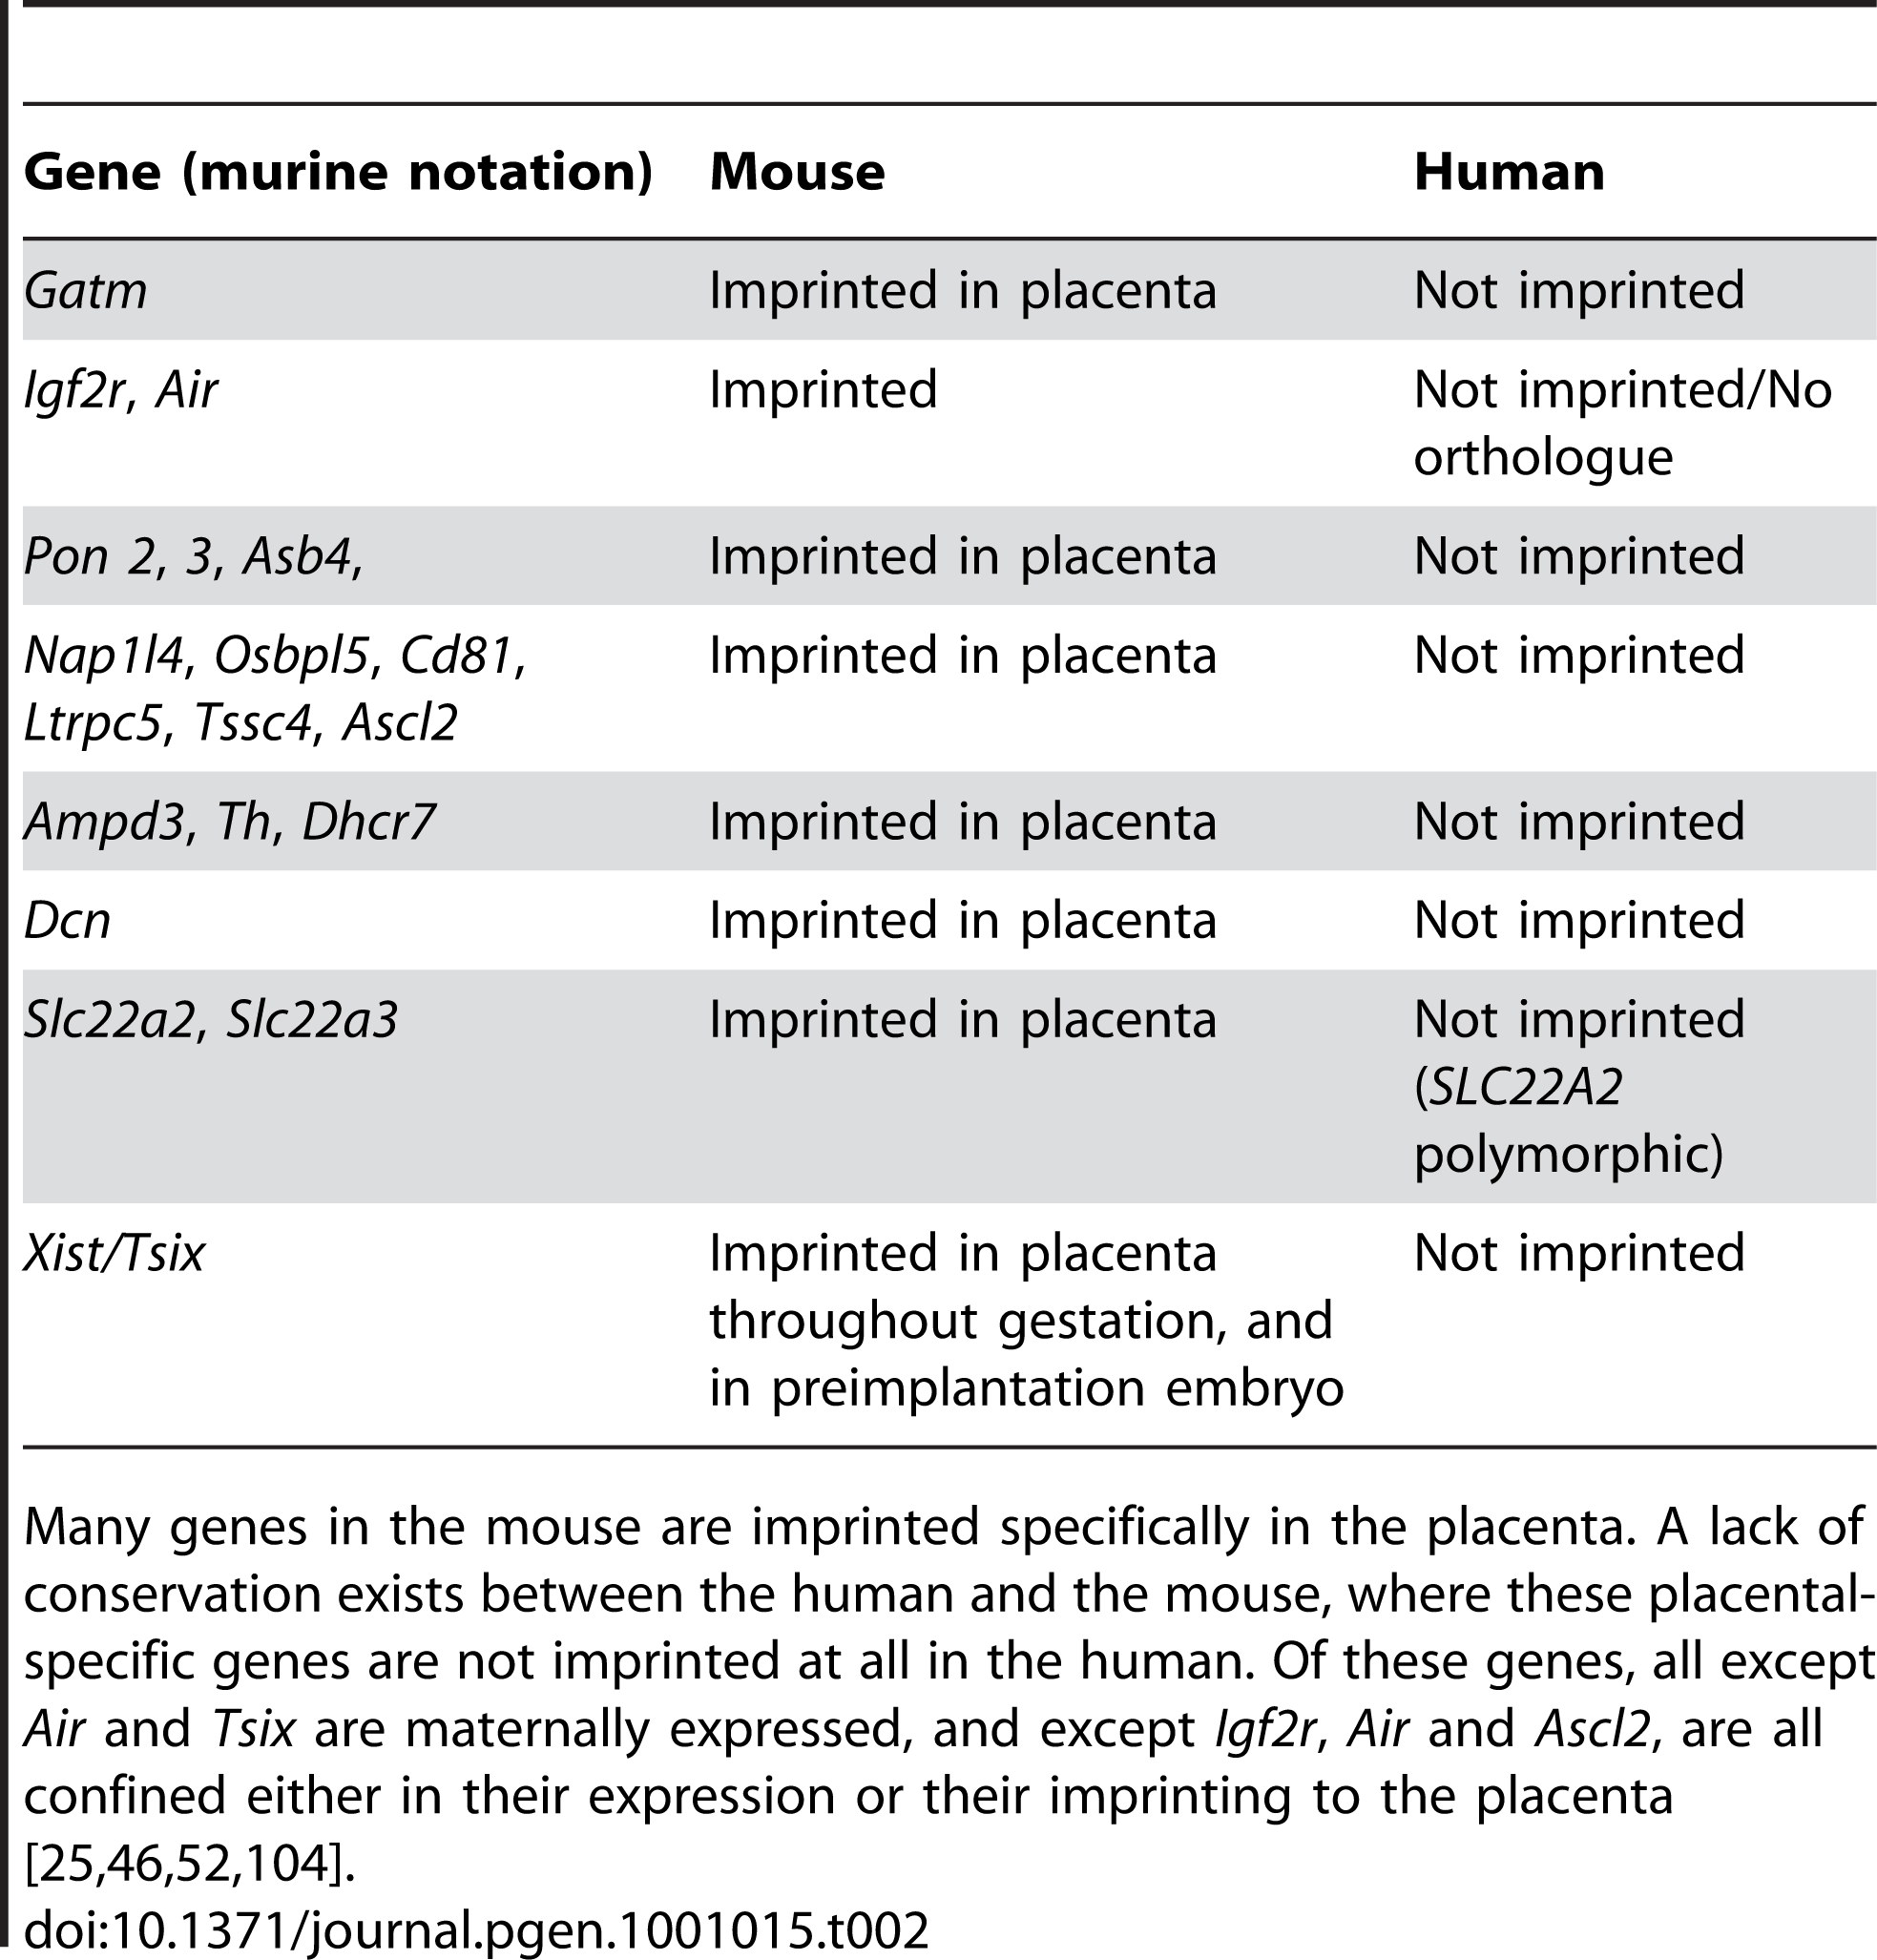 Conservation of imprints in human and mouse <a href=&quot;http://igc.otago.ac.nz&quot;>http://igc.otago.ac.nz</a>.